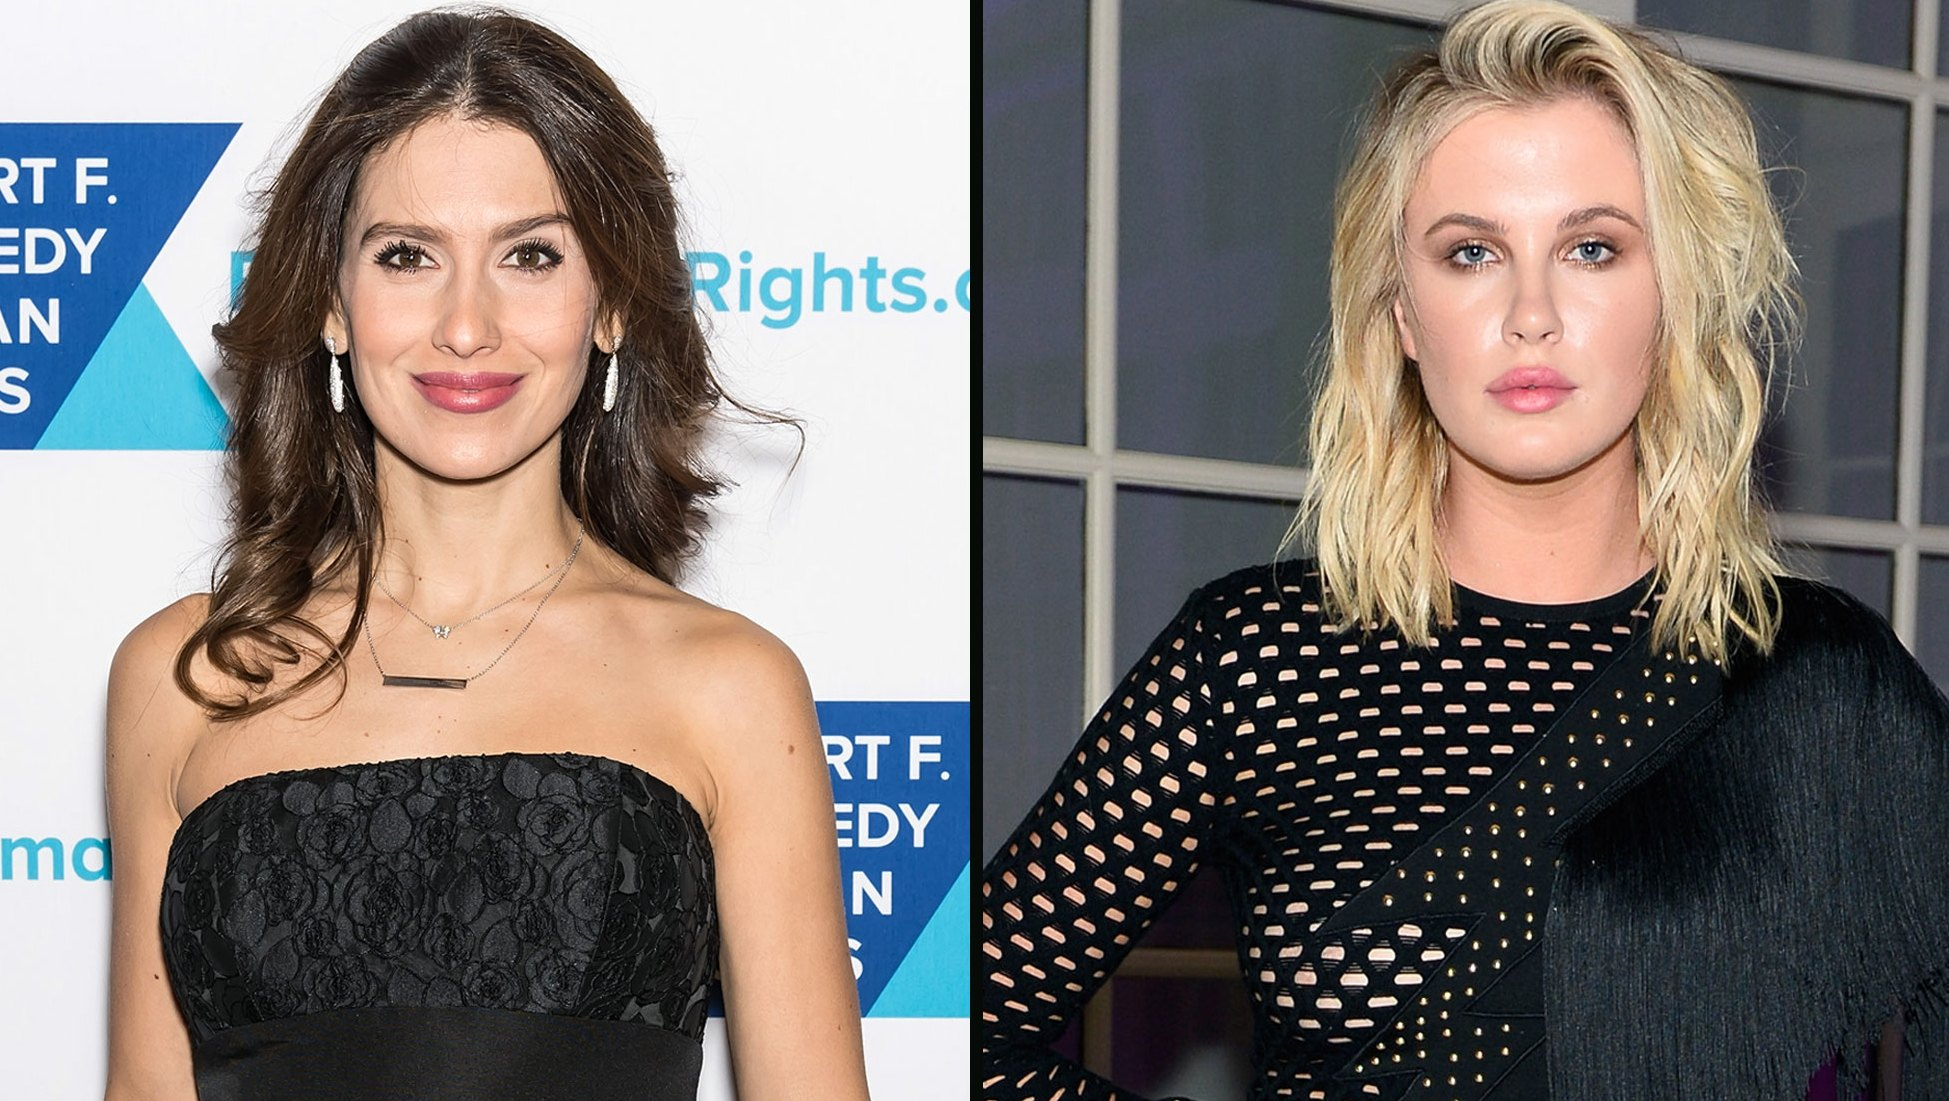 Hilaria Baldwin Relationship With Stepdaughter Ireland Baldwin